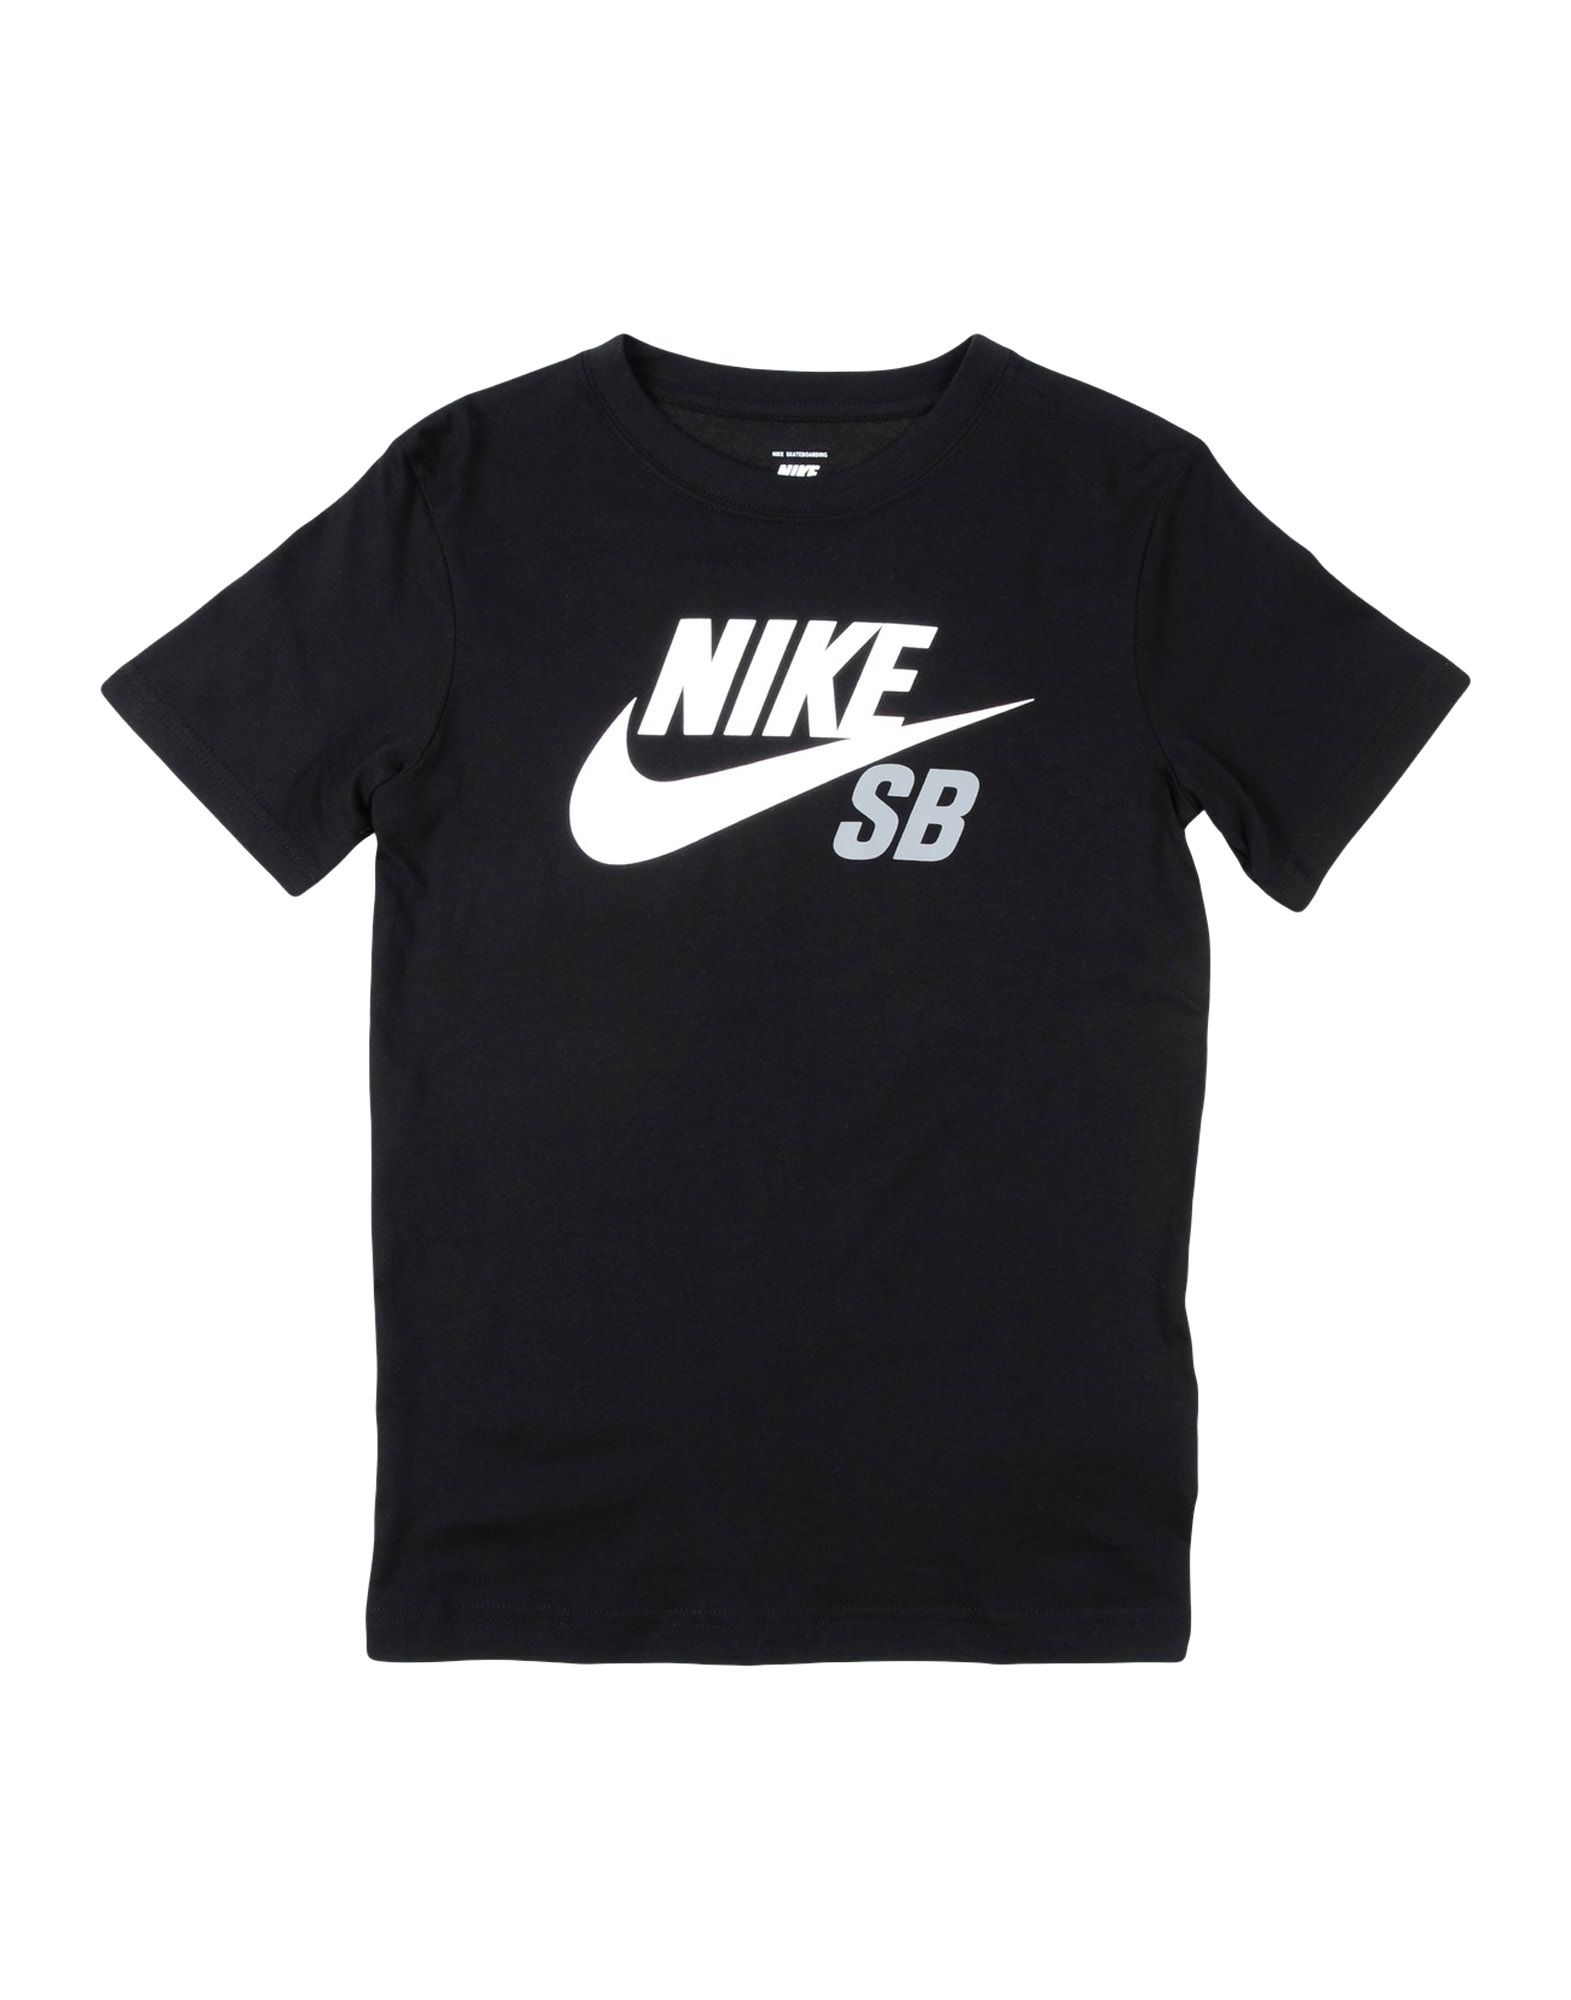 NIKE SB COLLECTION Футболка nike sb collection футболка